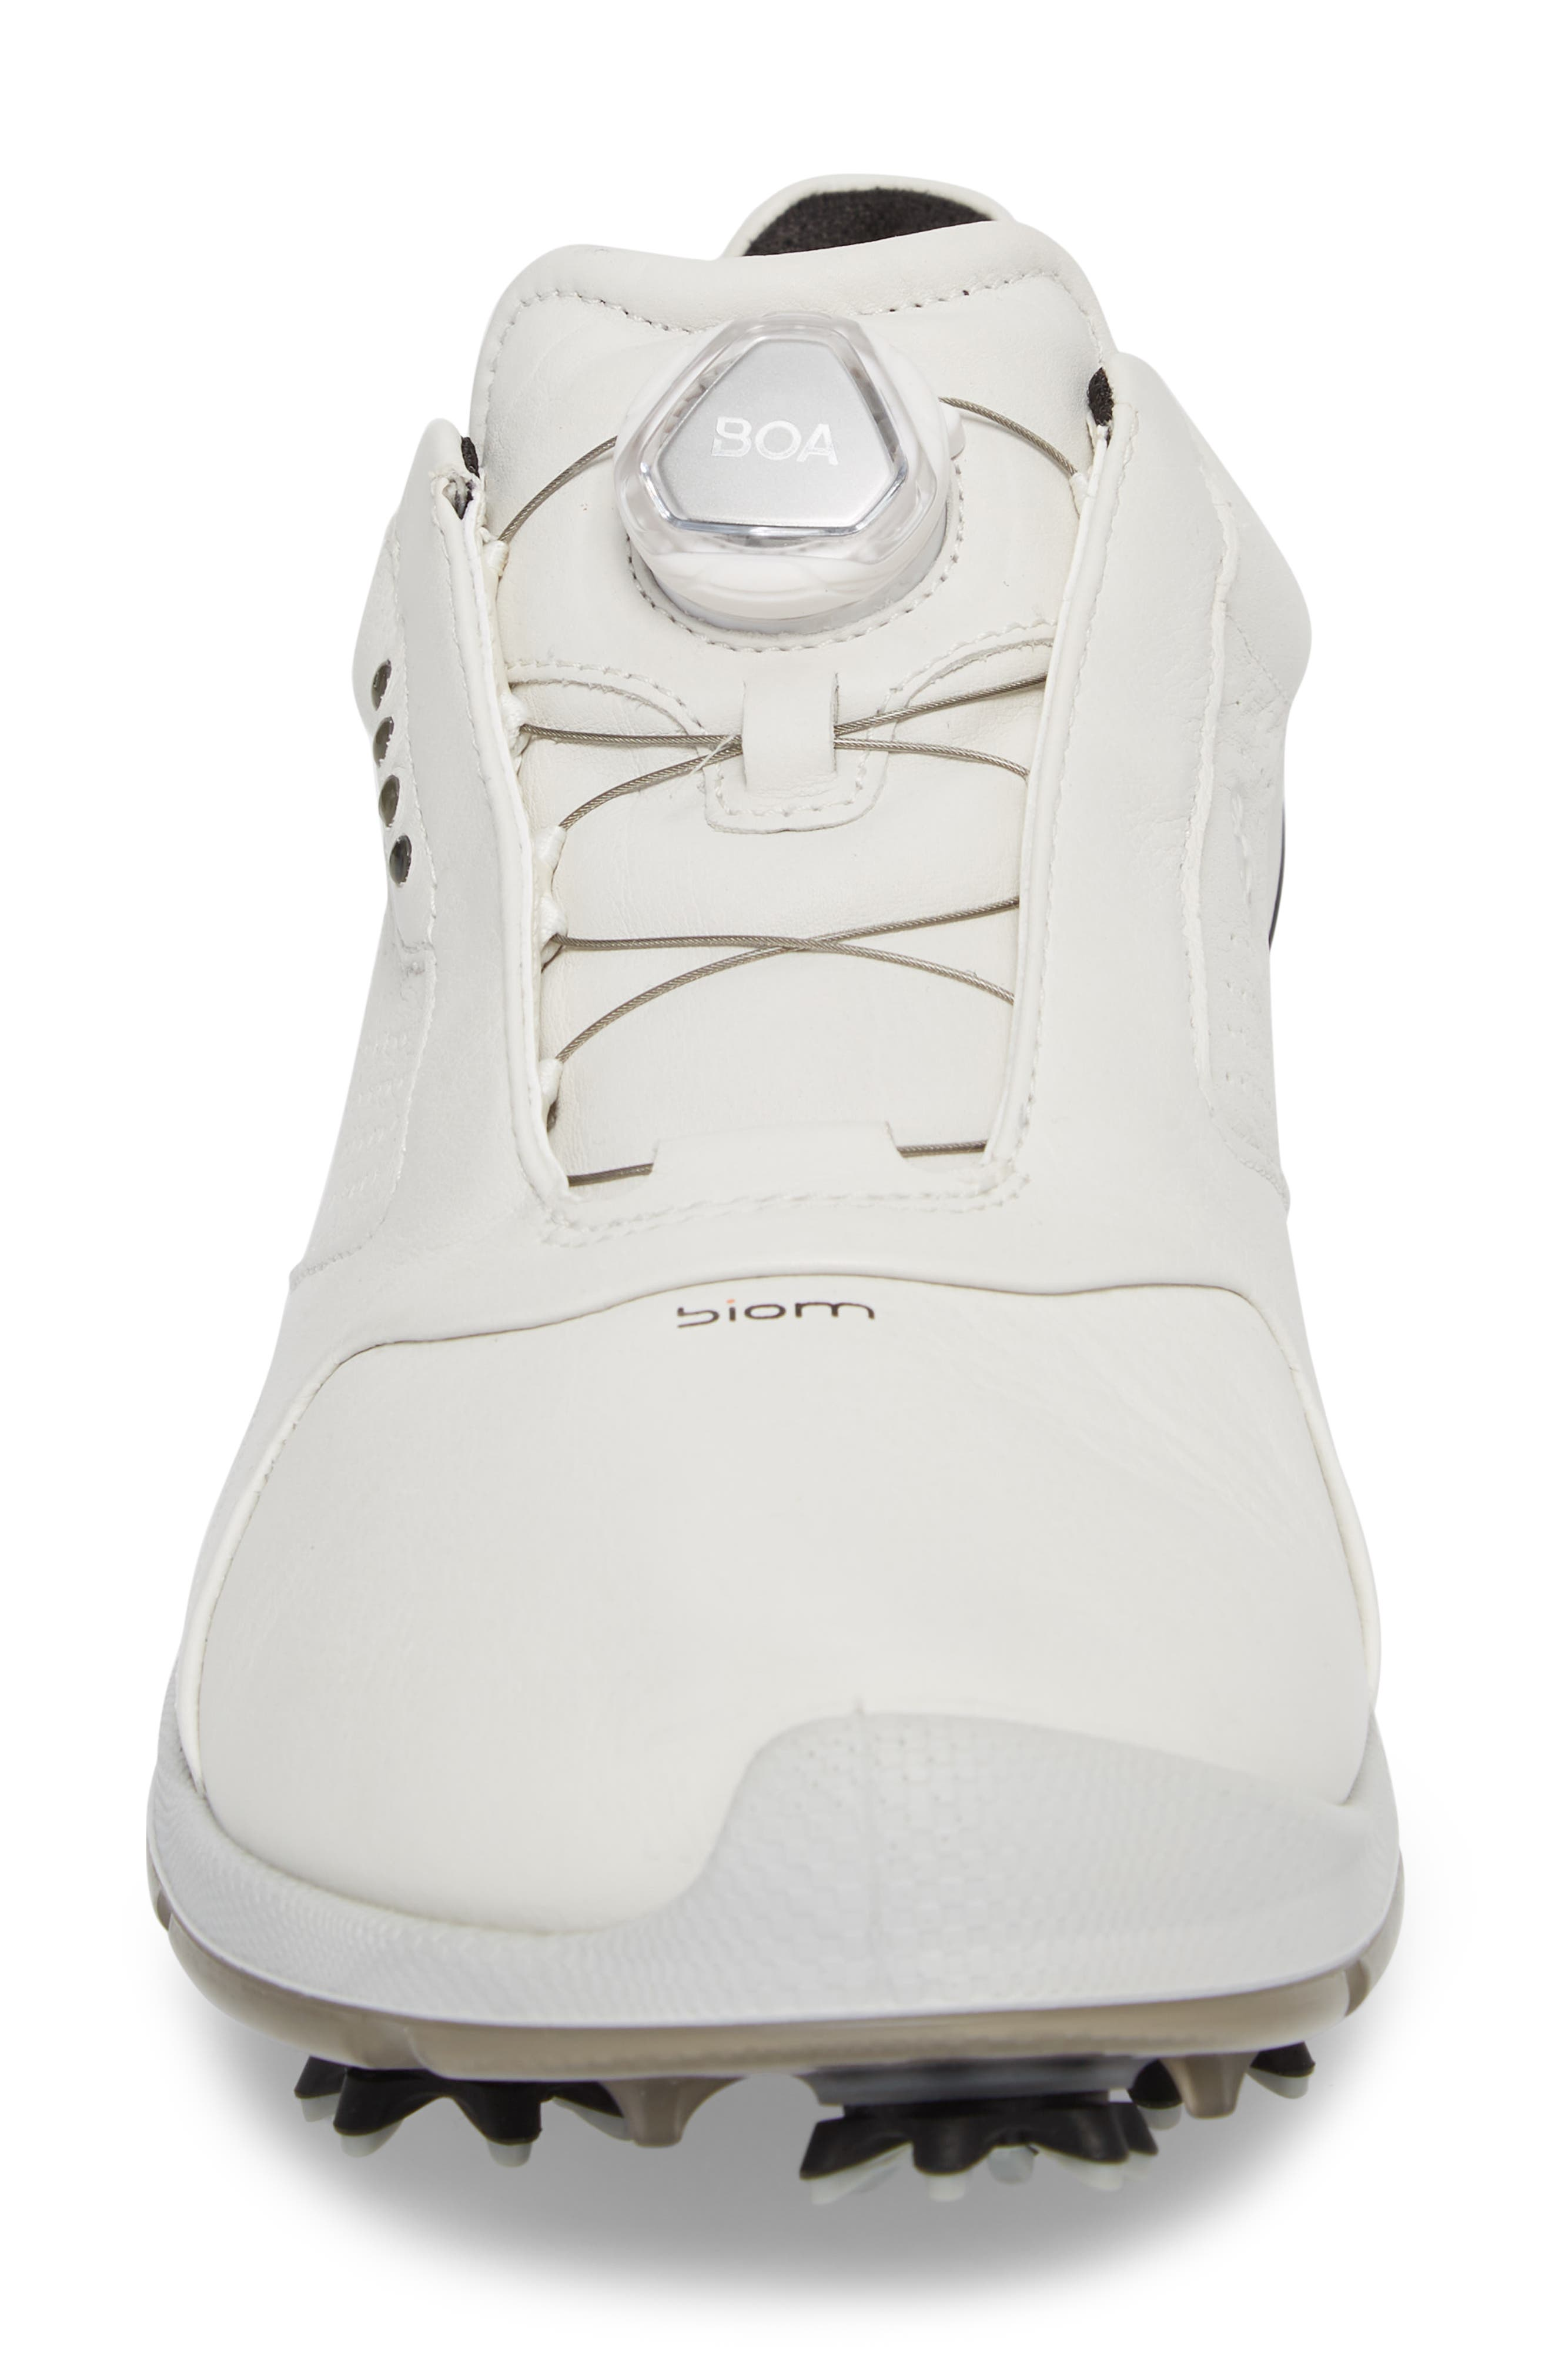 BIOM 2 BOA Gore-Tex<sup>®</sup> Golf Shoe,                             Alternate thumbnail 4, color,                             White/ Black Leather